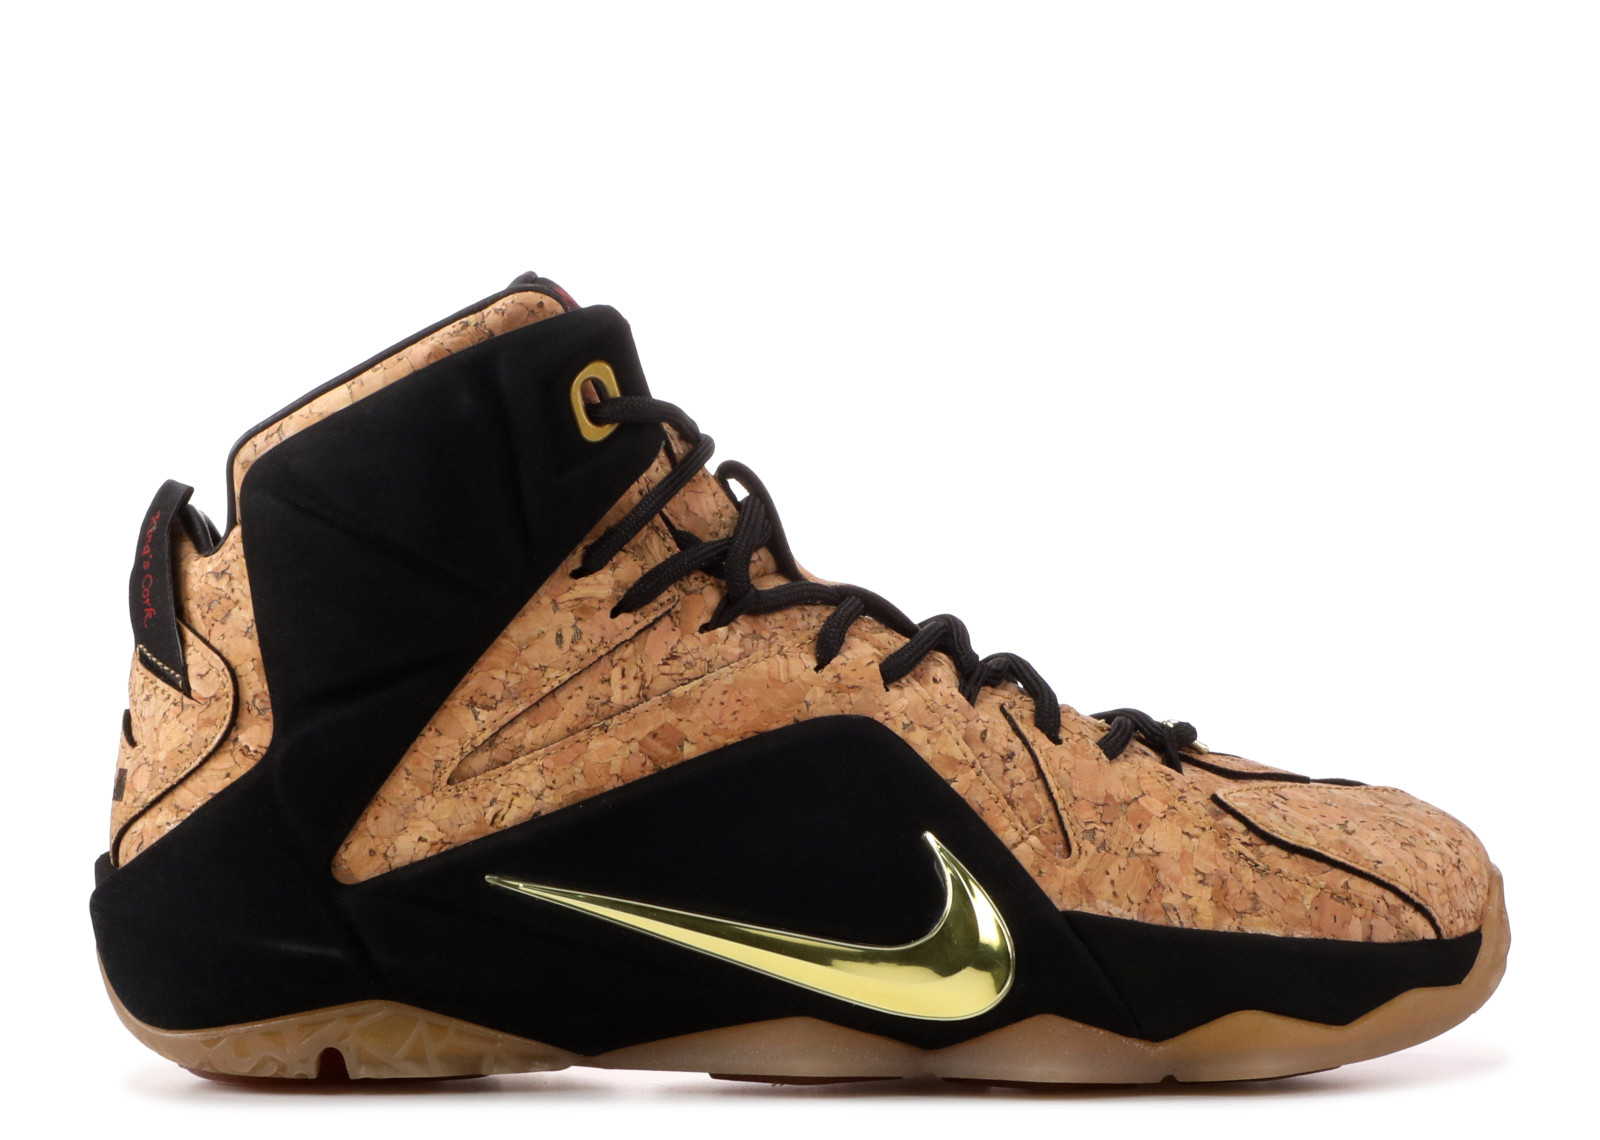 2df399534b123 Lebron 12 Ext  King s Cork  - 768829-100 - Size 7.5. By Nike